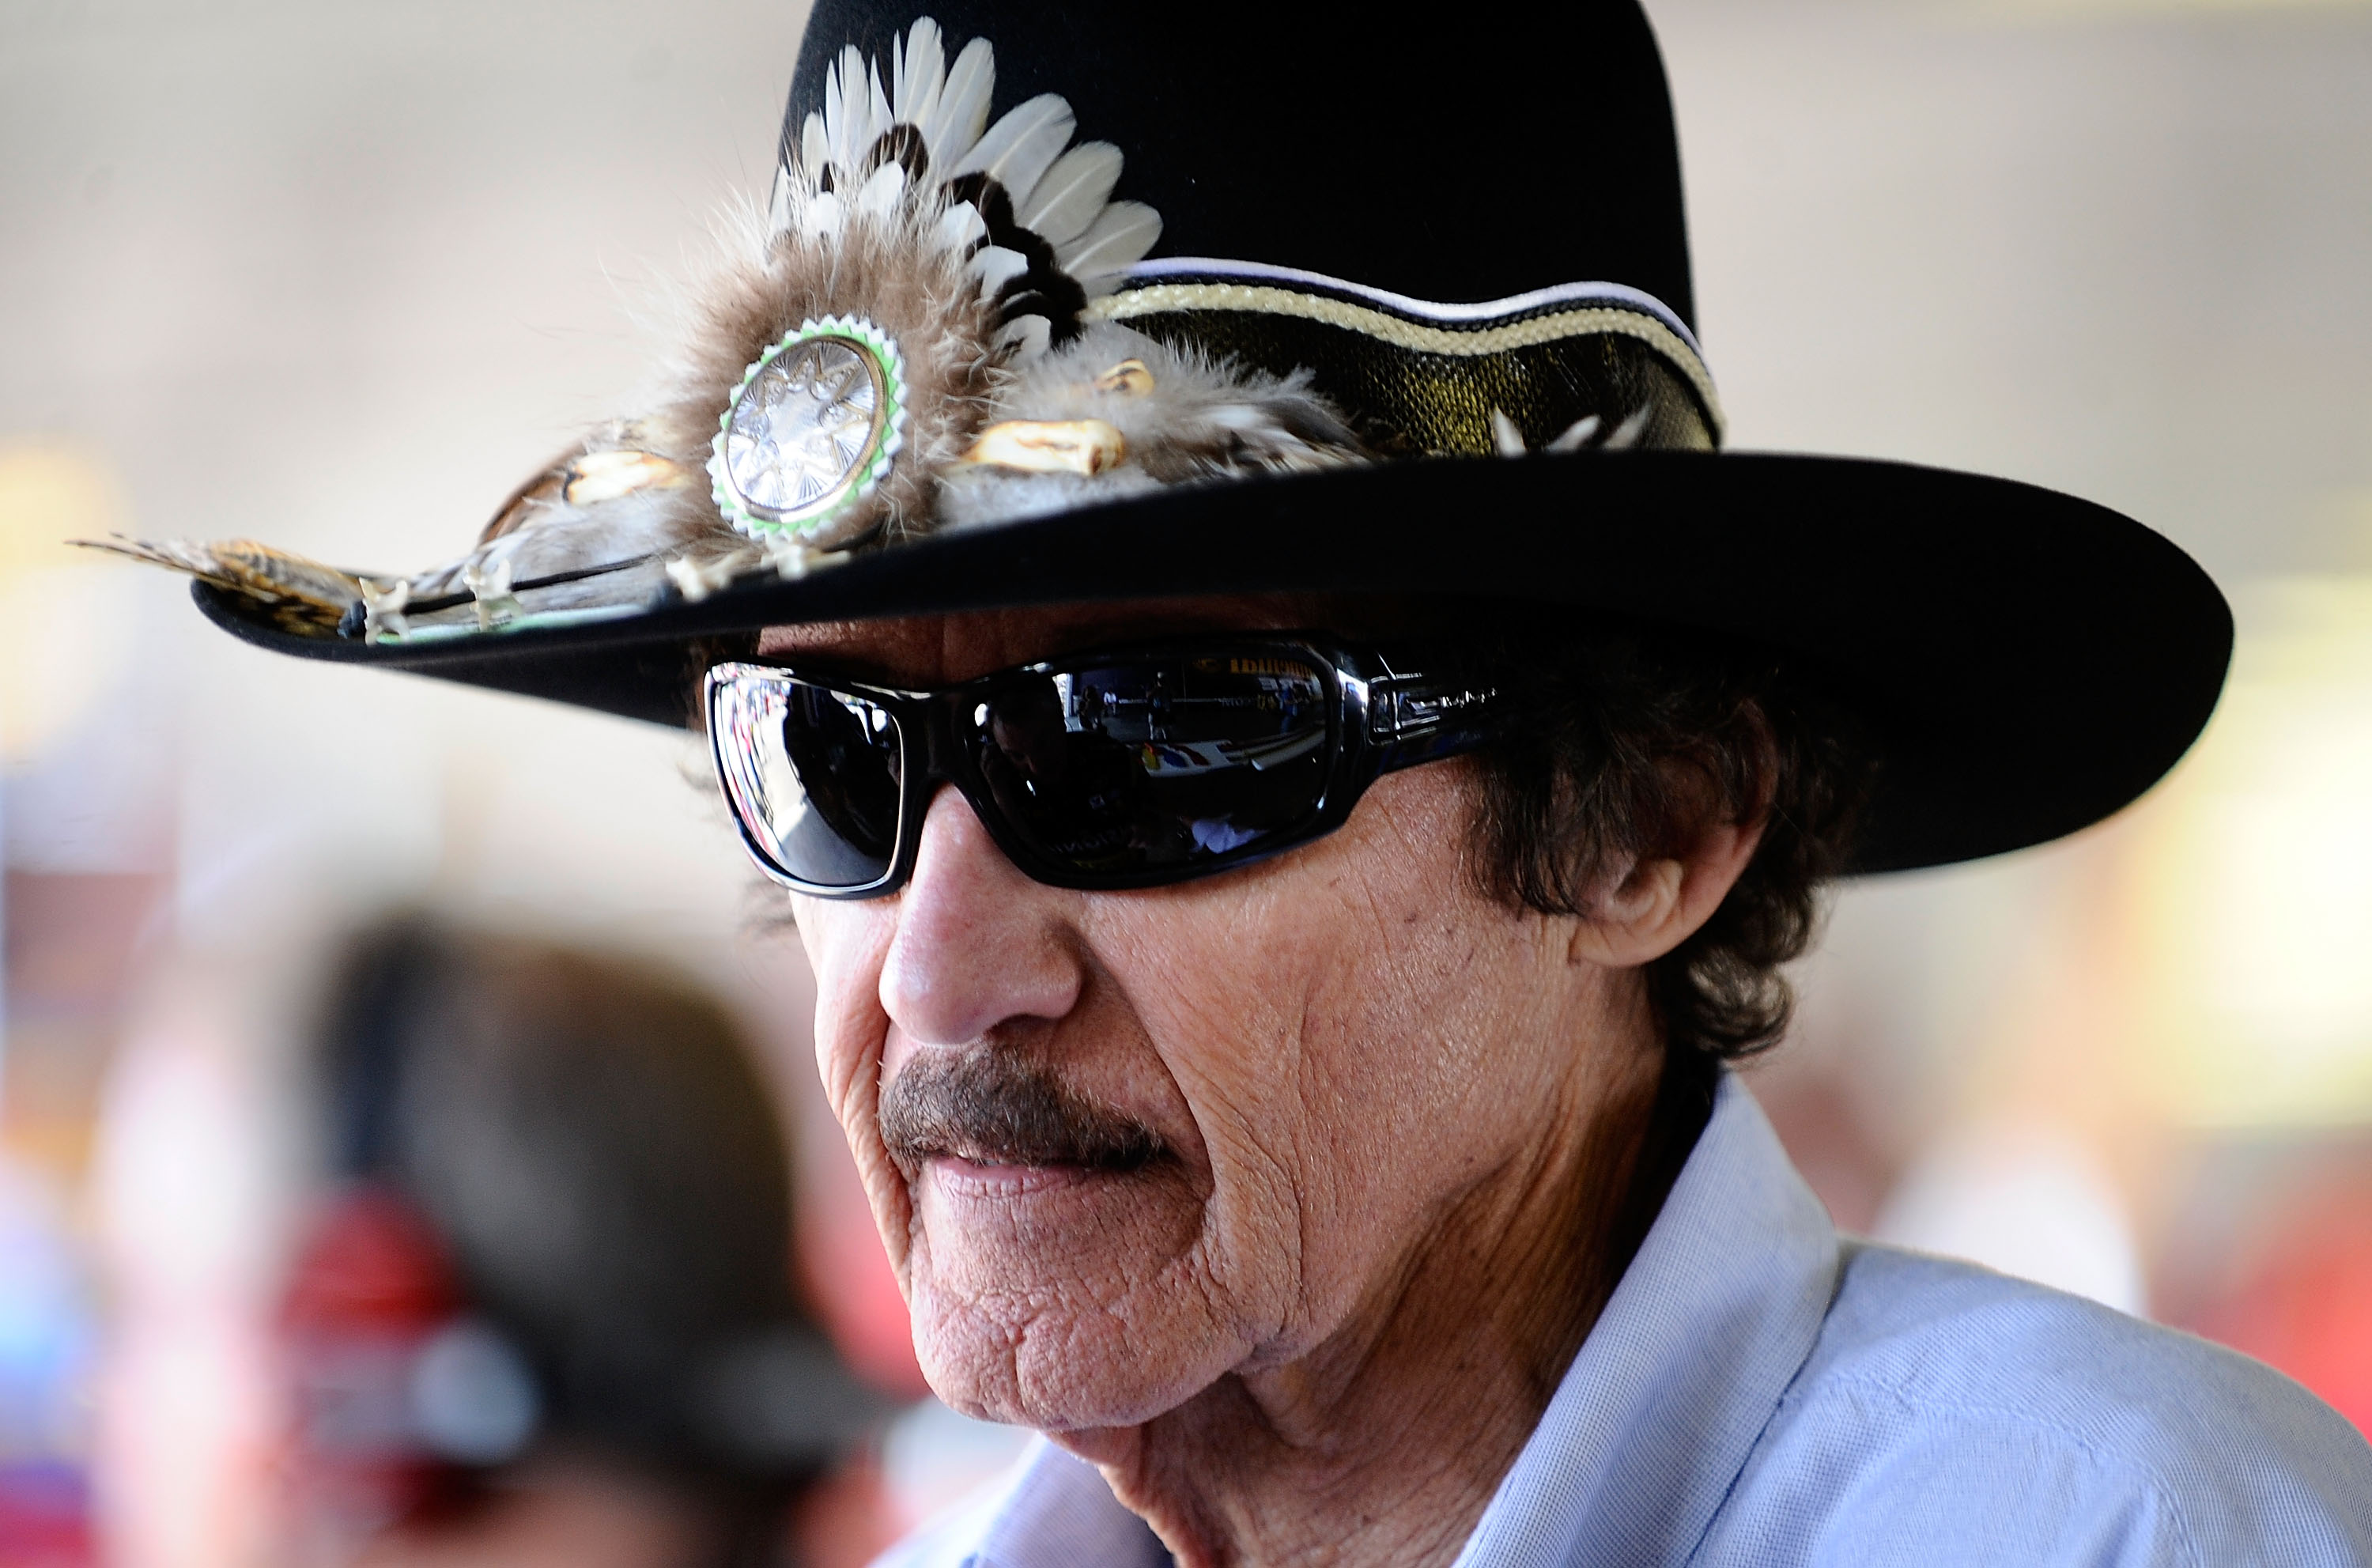 WATKINS GLEN, NY - AUGUST 06:  Team owner Richard Petty stands in the garage during practice for the NASCAR Heluva Good! Sour Cream Dips at The Glen on August 6, 2010 in Watkins Glen, New York.  (Photo by Jeff Zelevansky/Getty Images for NASCAR)